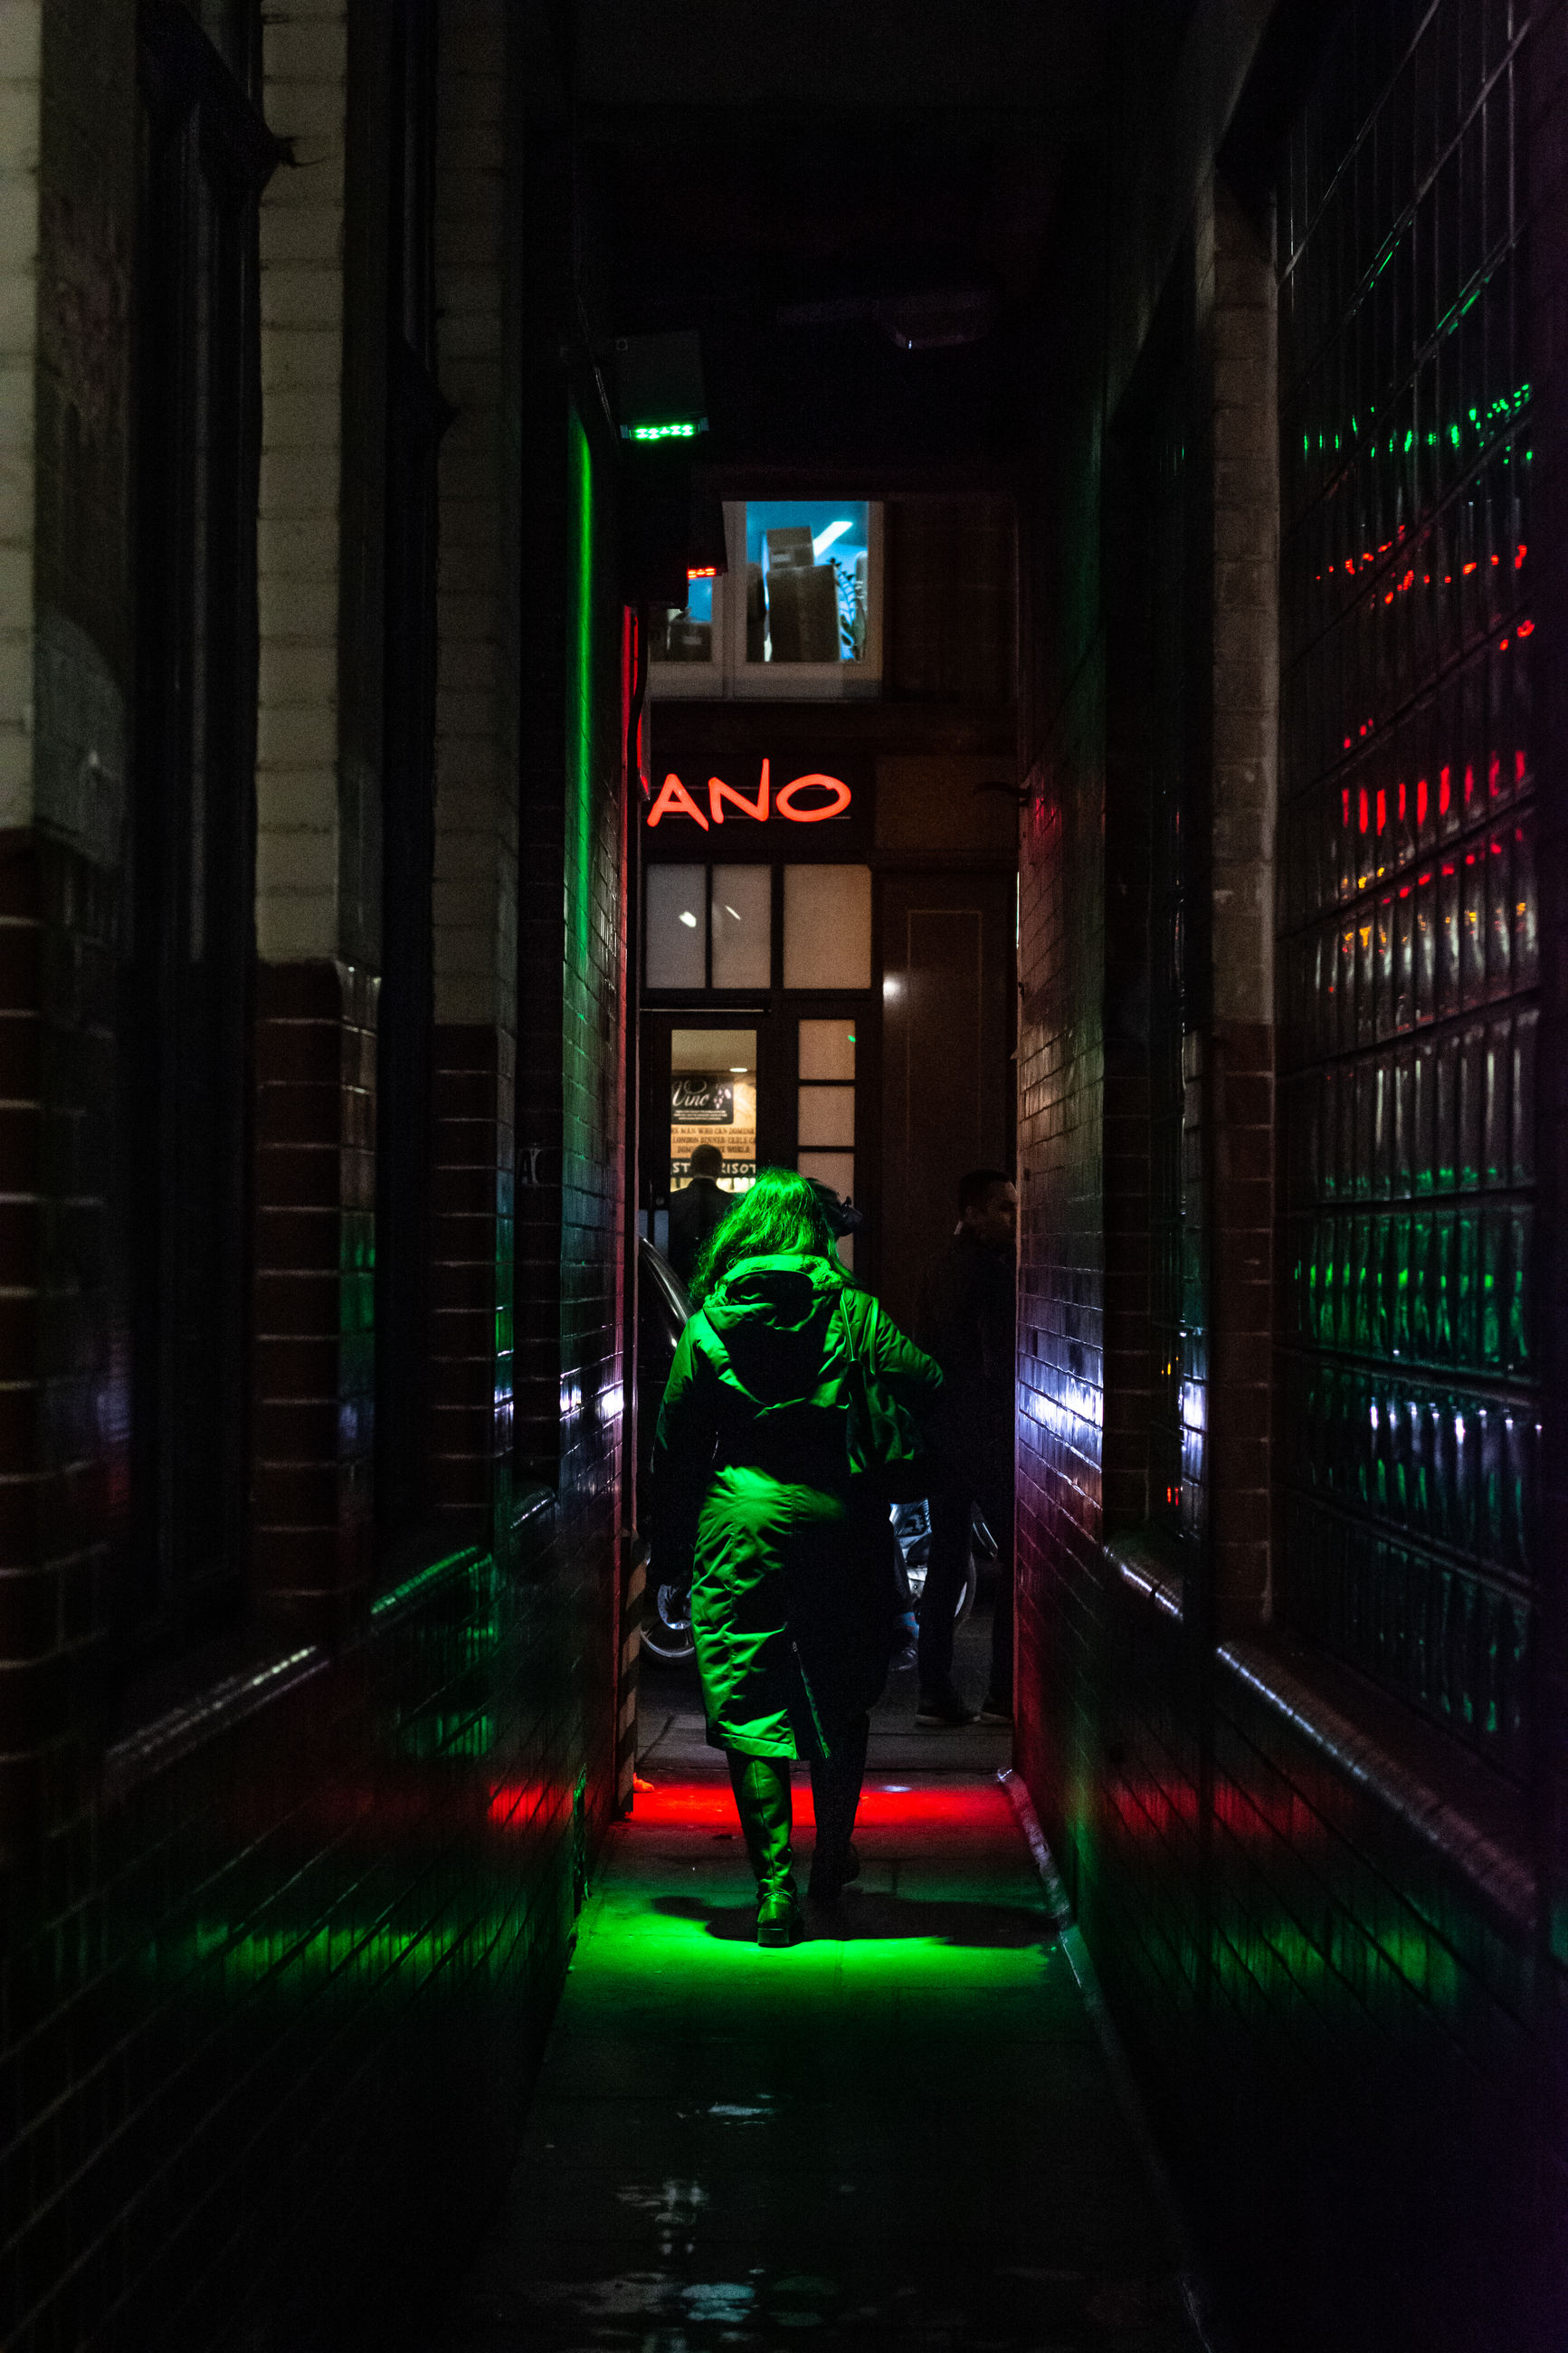 illuminated, architecture, one person, night, real people, full length, built structure, green color, building exterior, rear view, men, lifestyles, leisure activity, building, lighting equipment, walking, casual clothing, glowing, motion